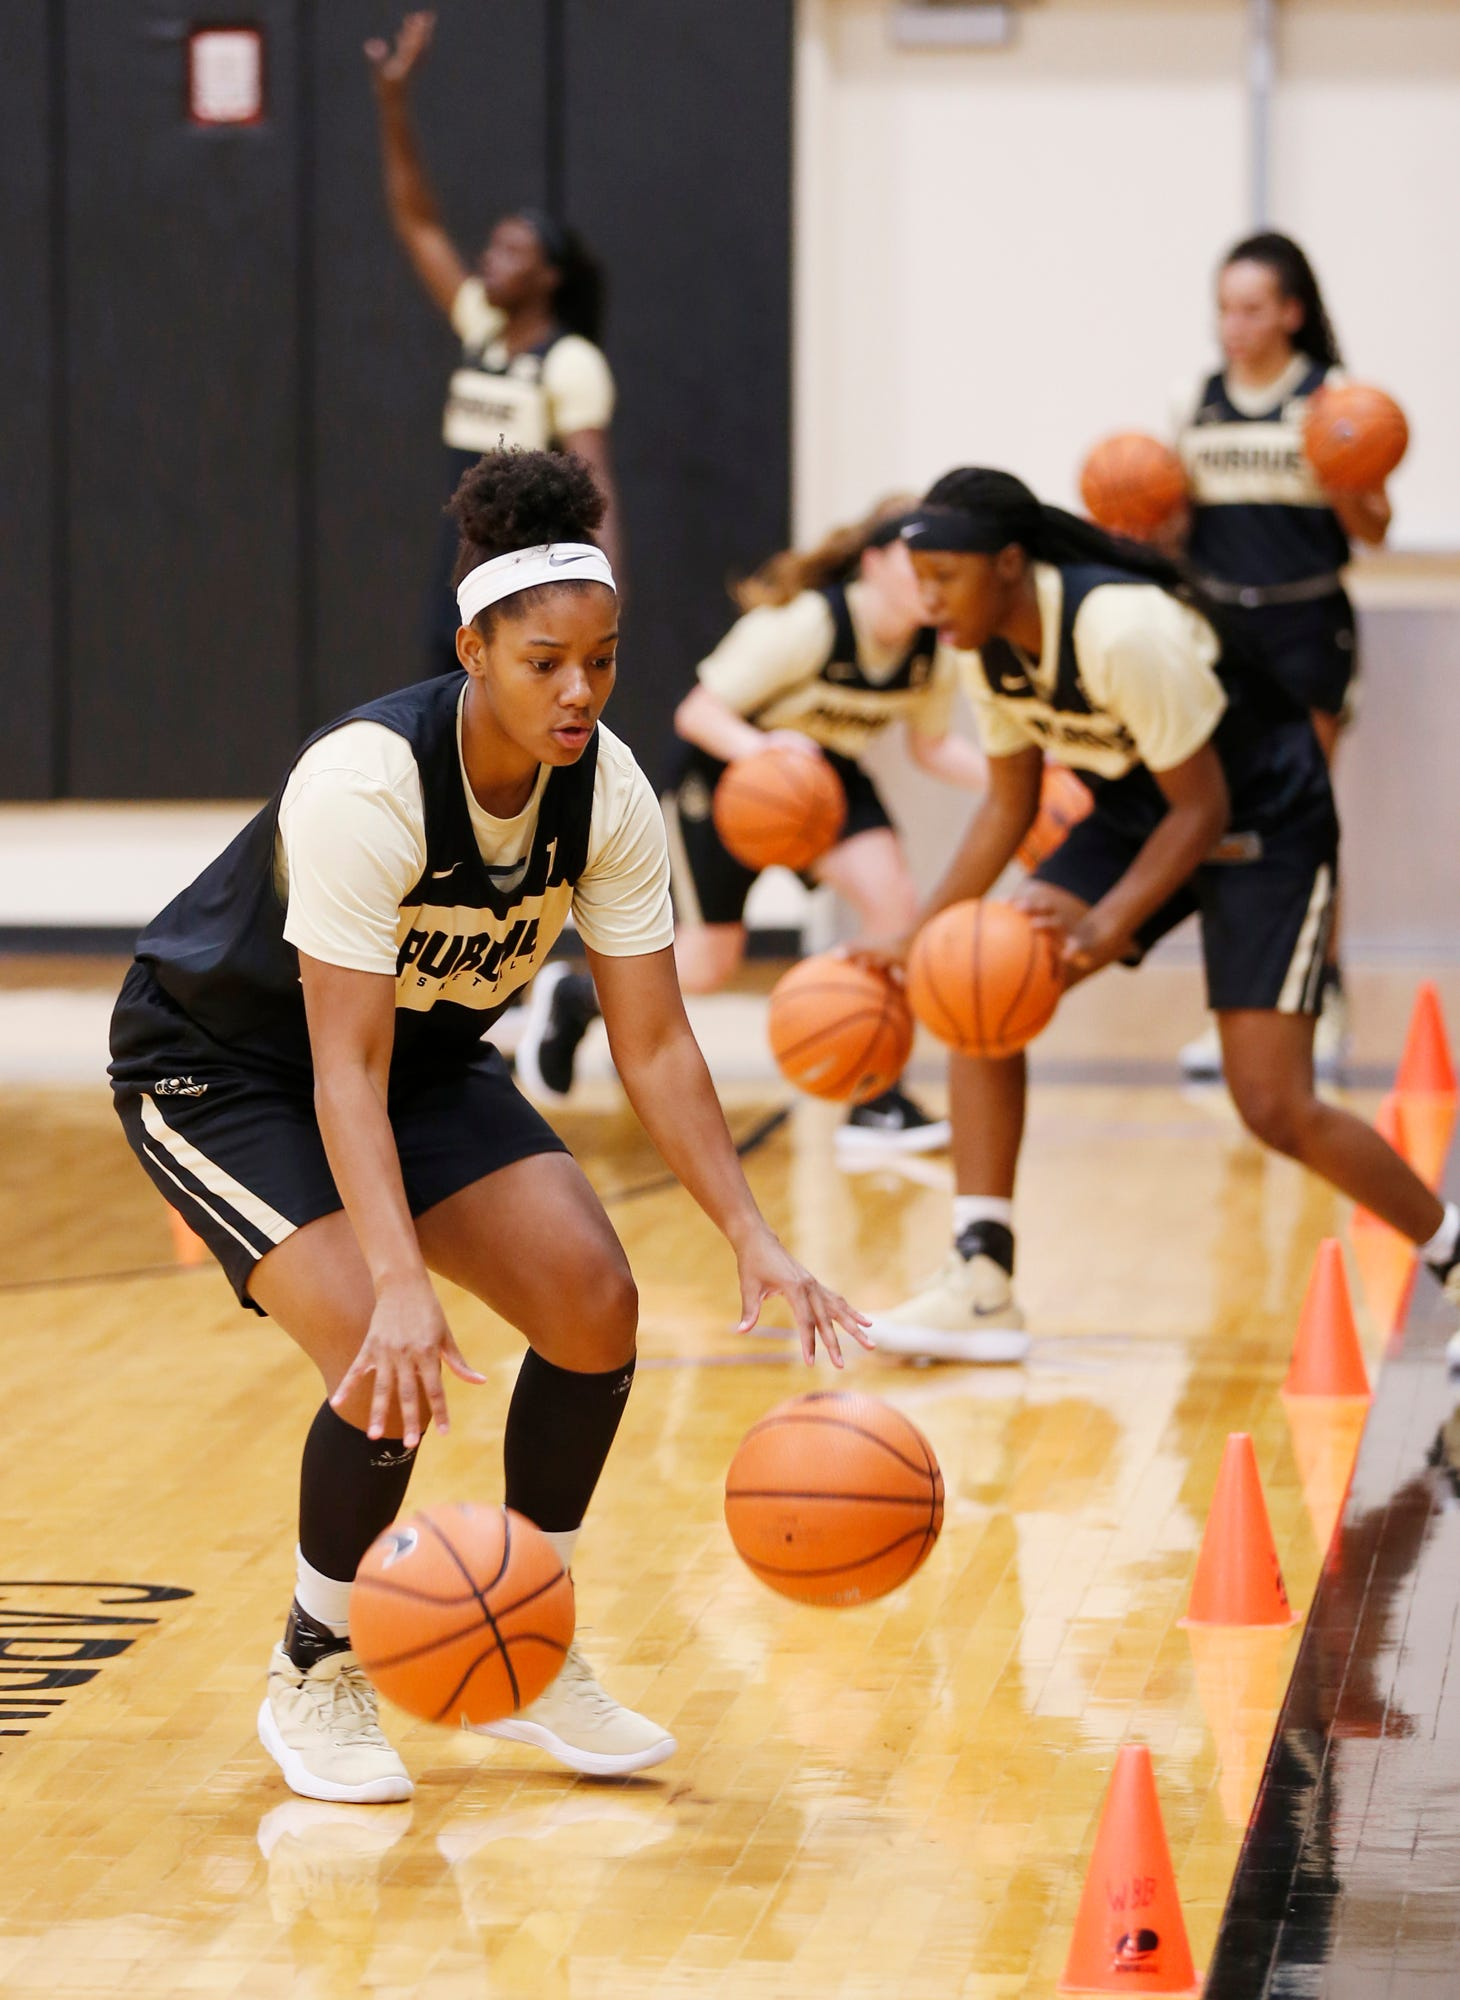 Dominique Oden in a dribbling drill during Purdue women's basketball practice Wednesday, September 26, 2018, at Cardinal Court in Mackey Arena.